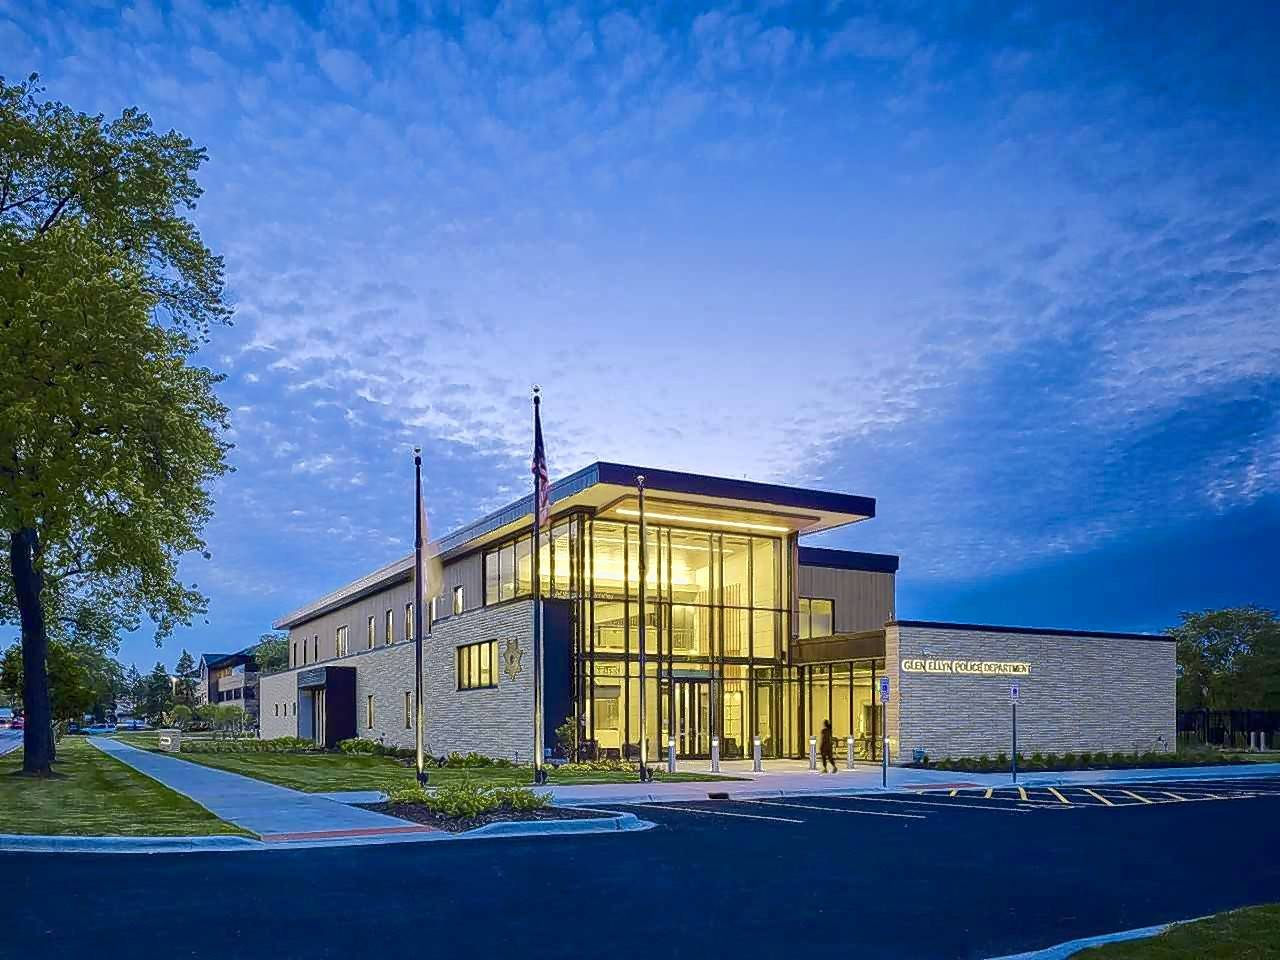 The Glen Ellyn Police Department in Glen Ellyn has been recognized with an Excellence in Architecture award from the American Institute of Architects NE-IL Chapter and a Silver Medal Award from the Association of Licensed Architects.